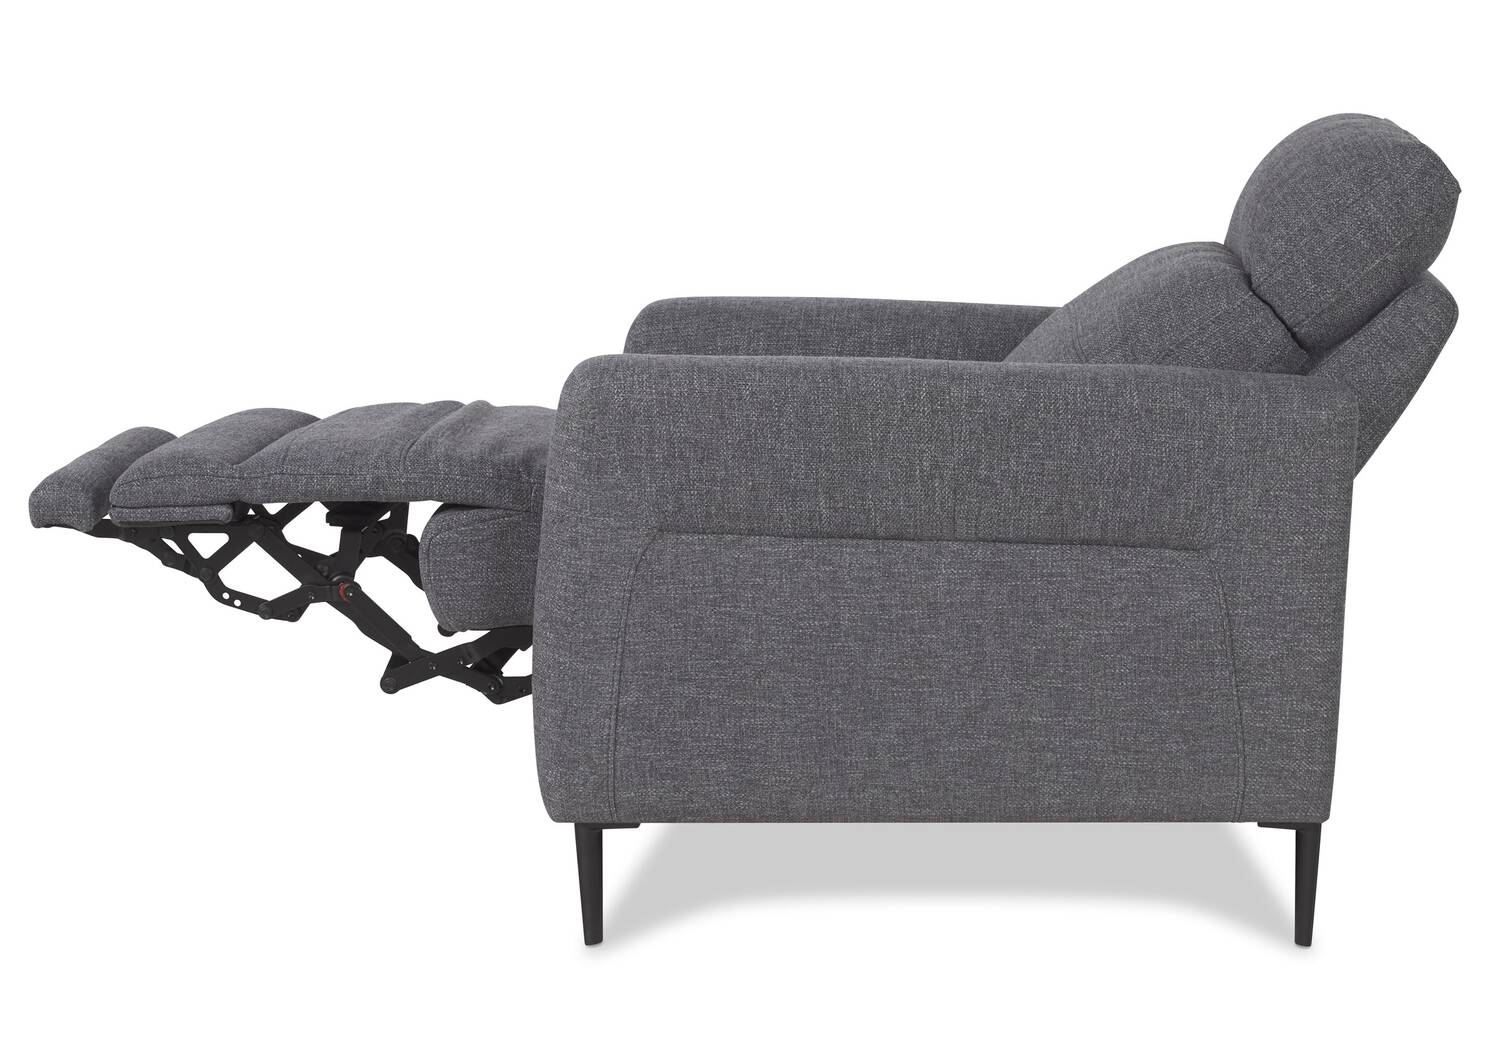 Fauteuil inclinable Pearson -Elron fumée